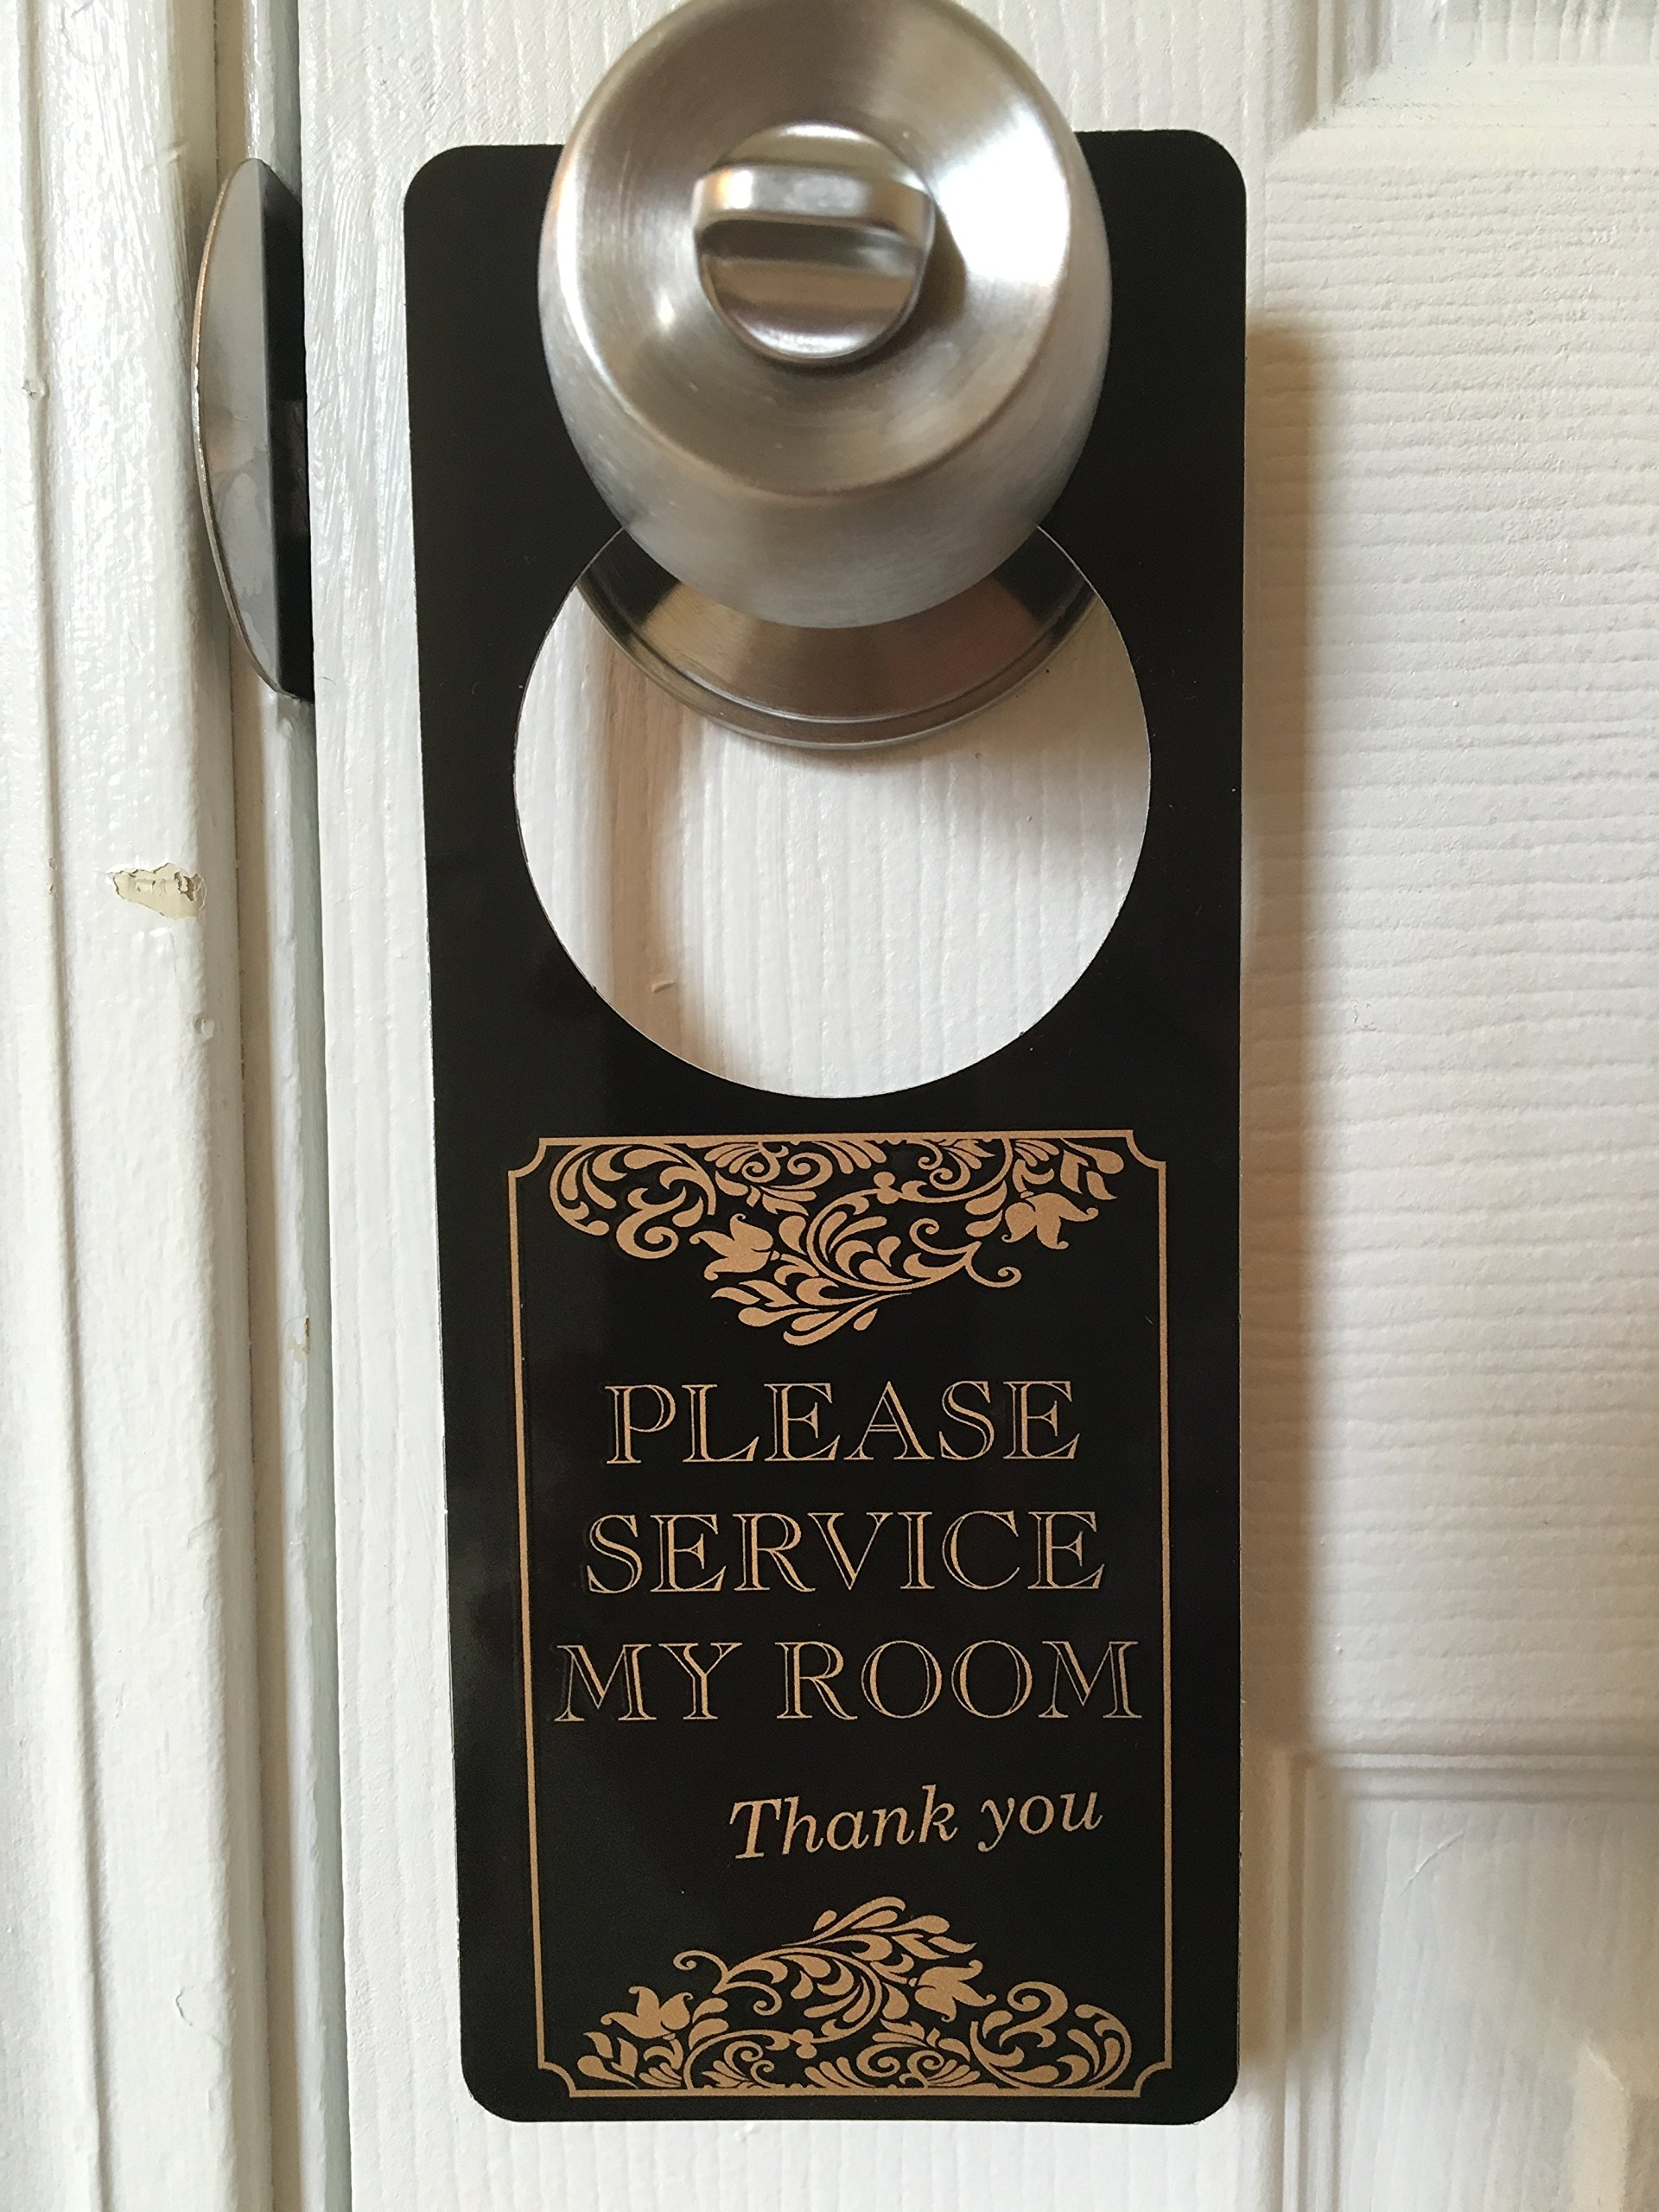 SecurePro Signs Do Not Disturb/Please Service Room Premium Quality PVC Door Hanger; Metallic Gold Text on Solid Black Background; 3.25'' Wide x 8'' Tall (10)